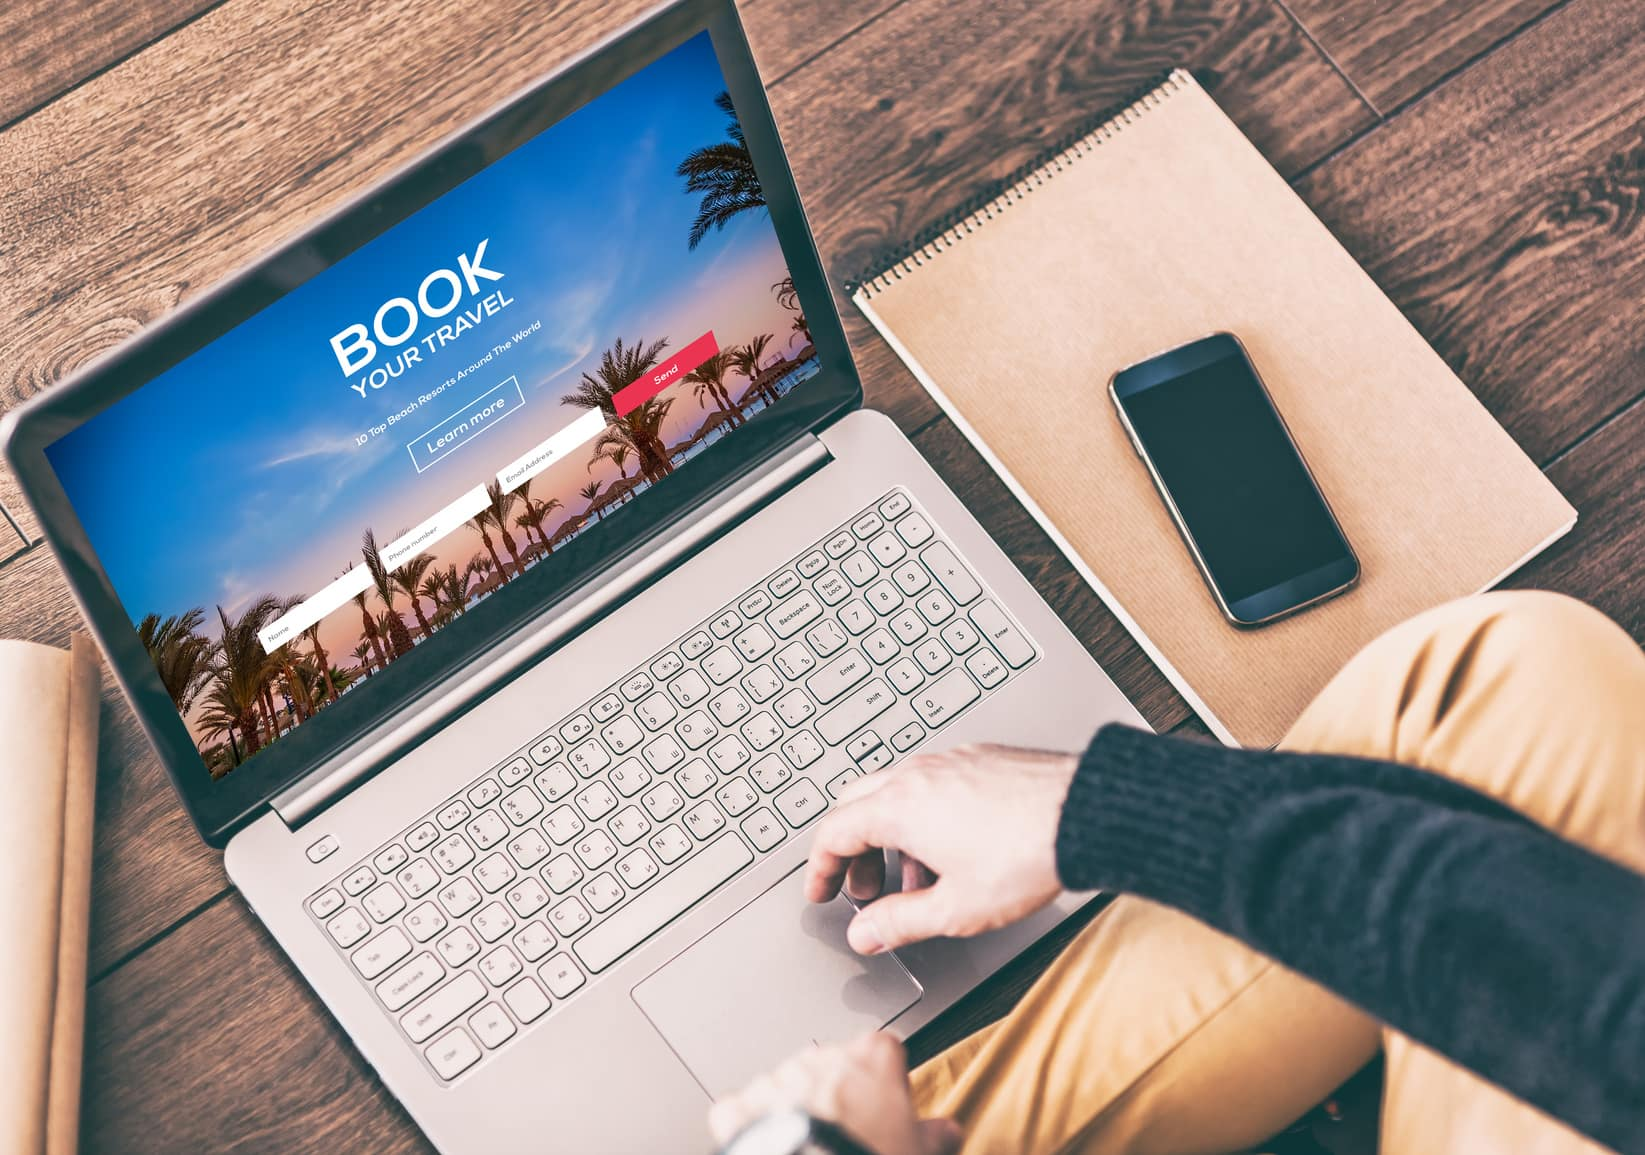 What are the benefits of direct online hotel booking?